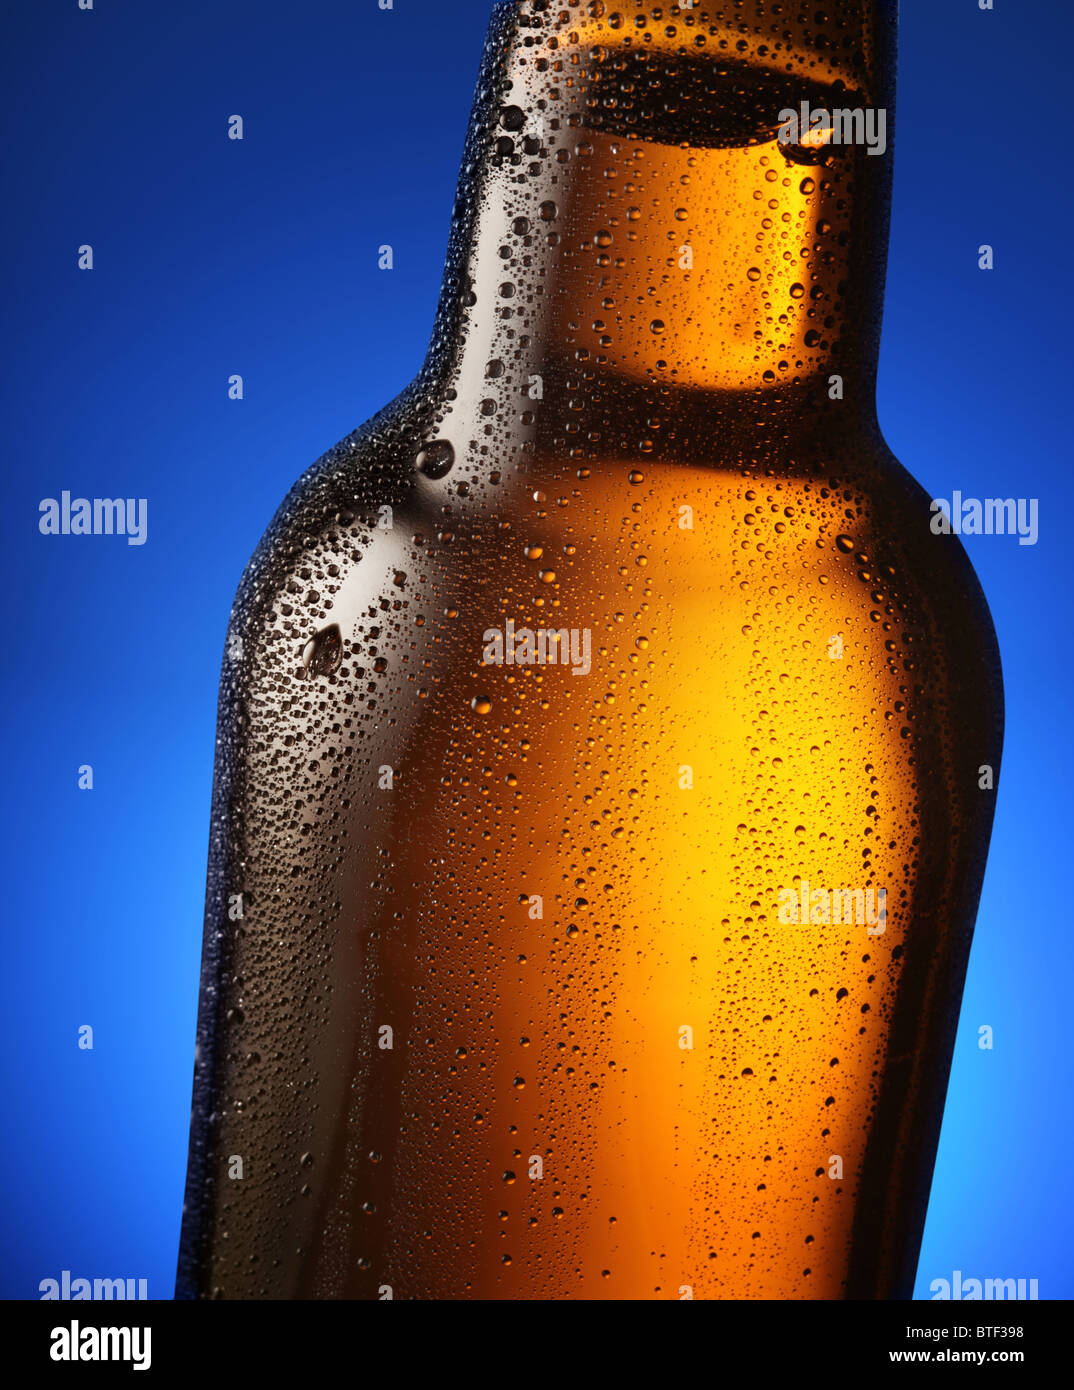 Bottle of beer with drops on a blue background. Close up part of the bottle. Stock Photo